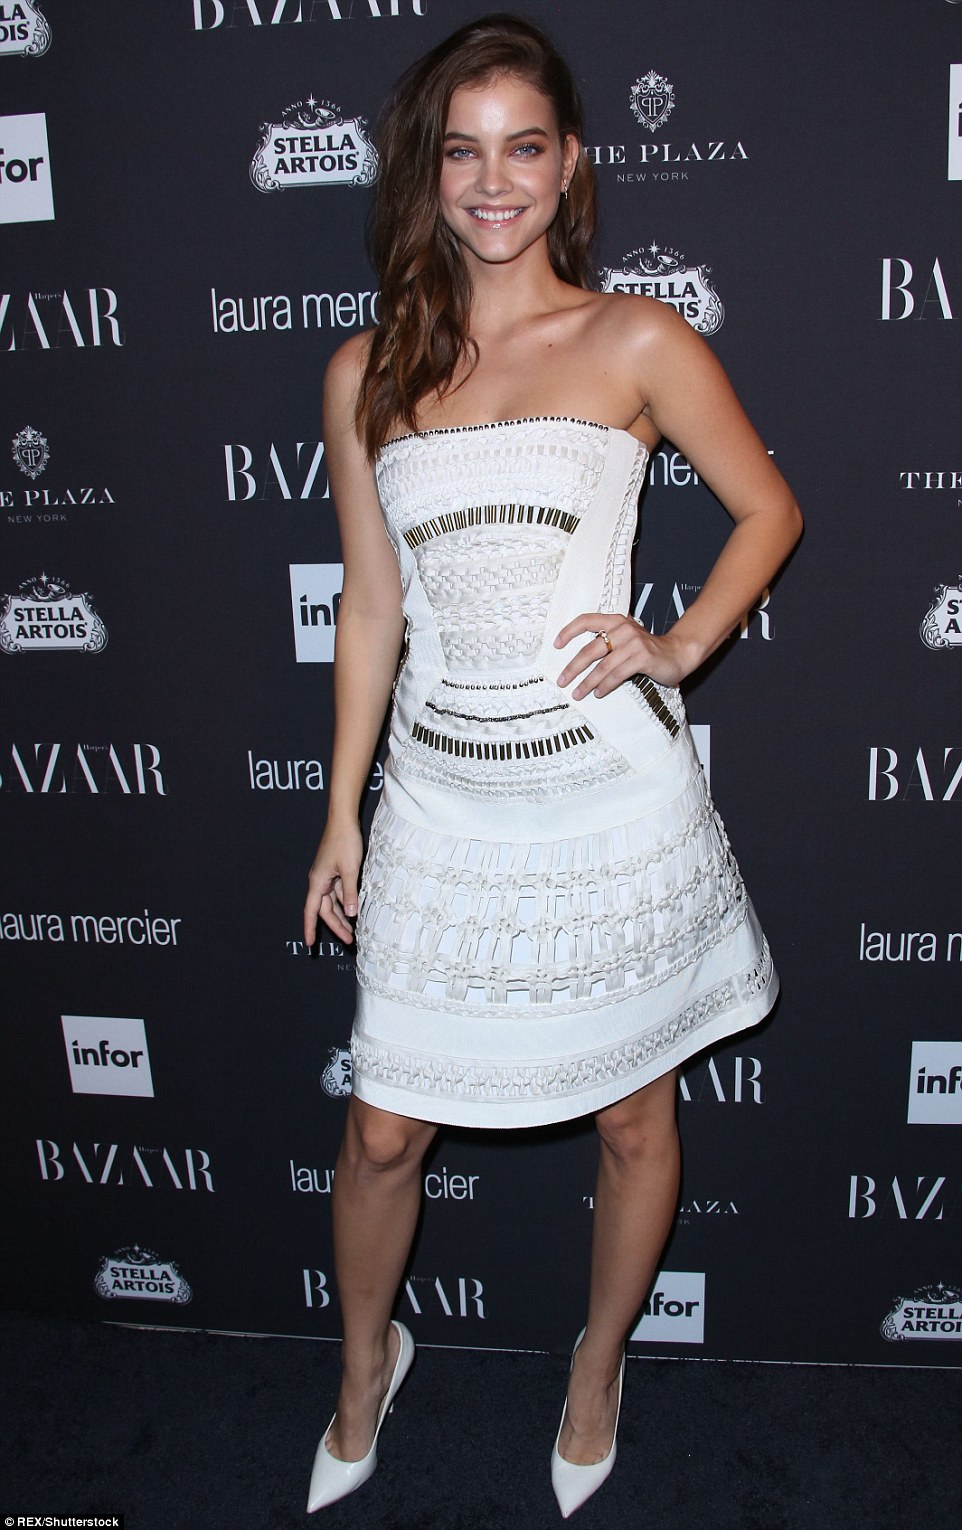 Model material: Hungarian model Barbara Palvin also headed to the star-studded bash, opting for the rare choice of a mini dress to show off her incredibly slender pins